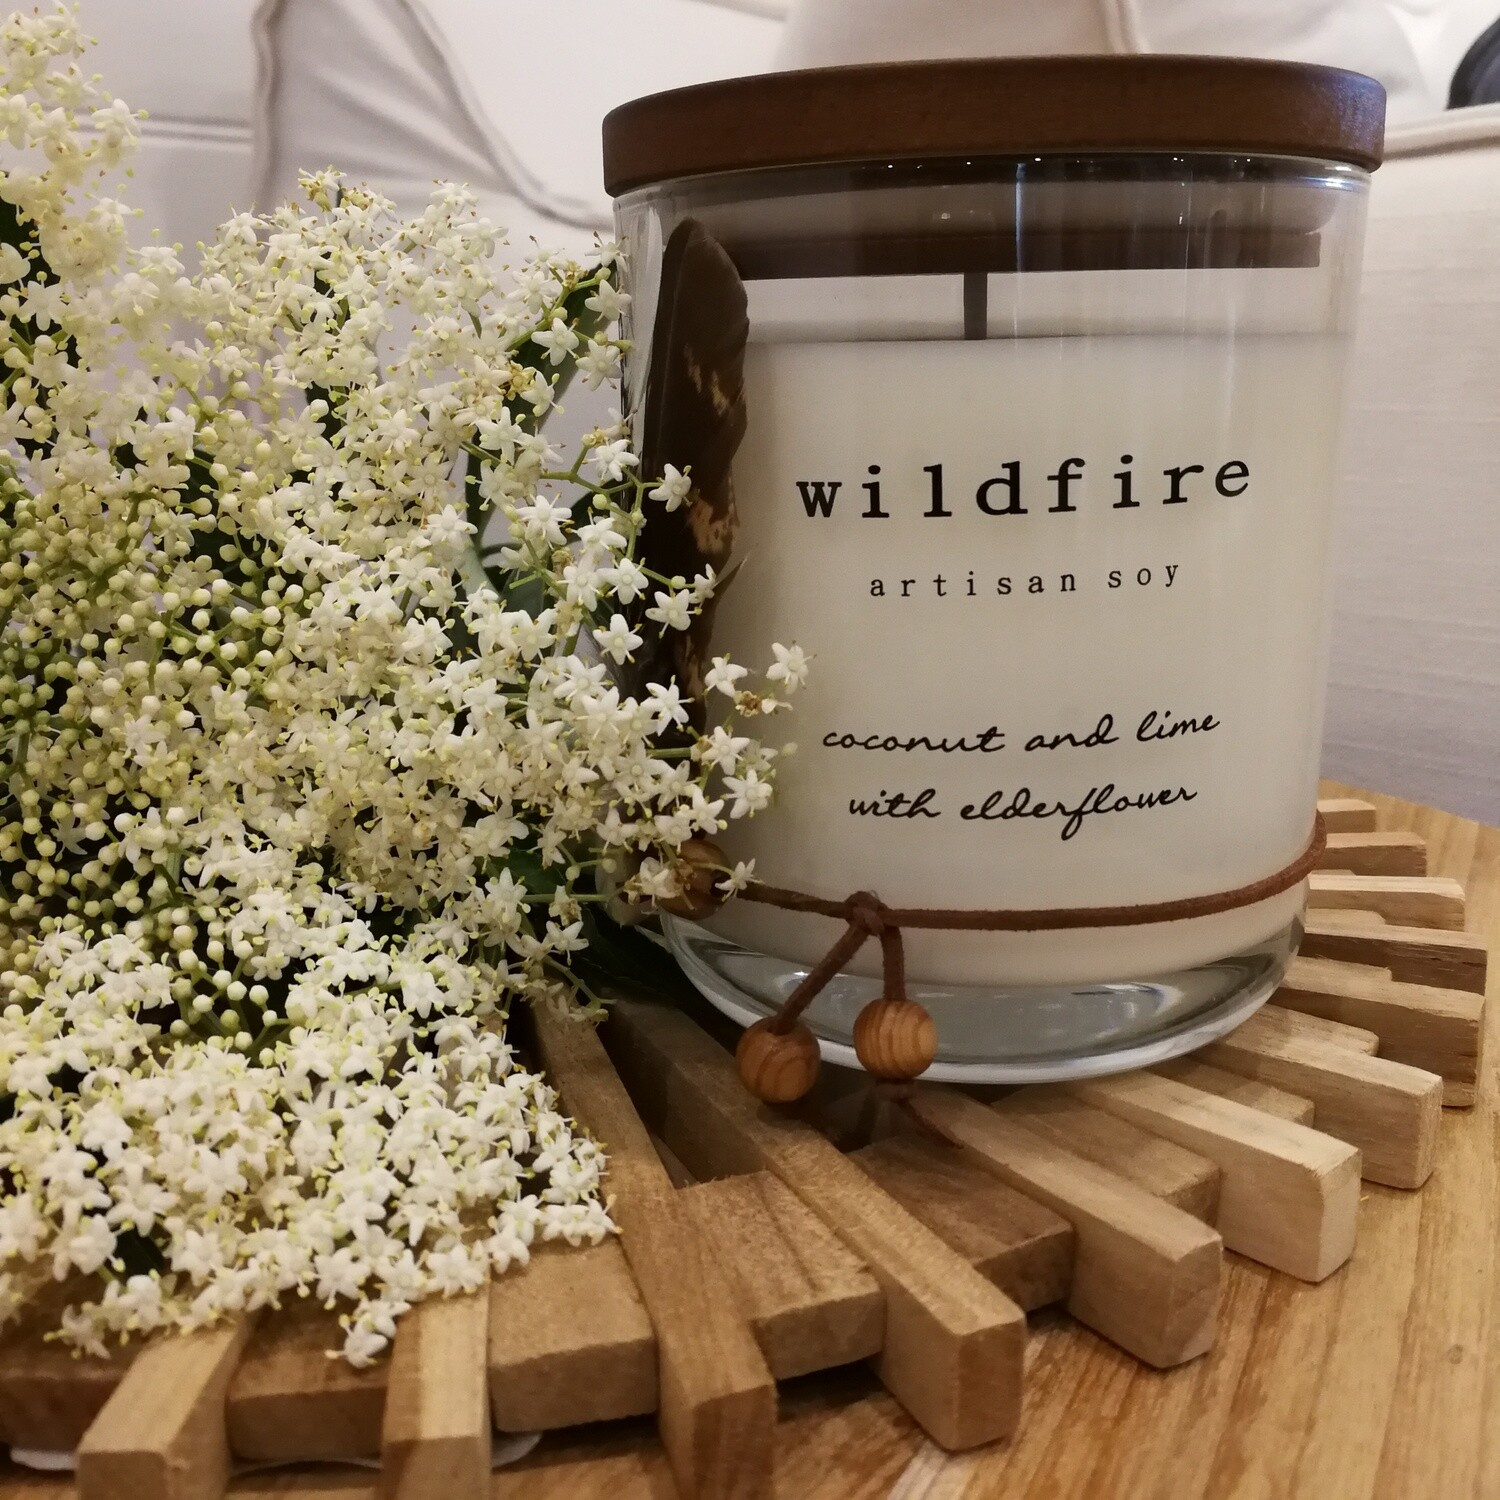 Wildfire Artisan Soy Candle